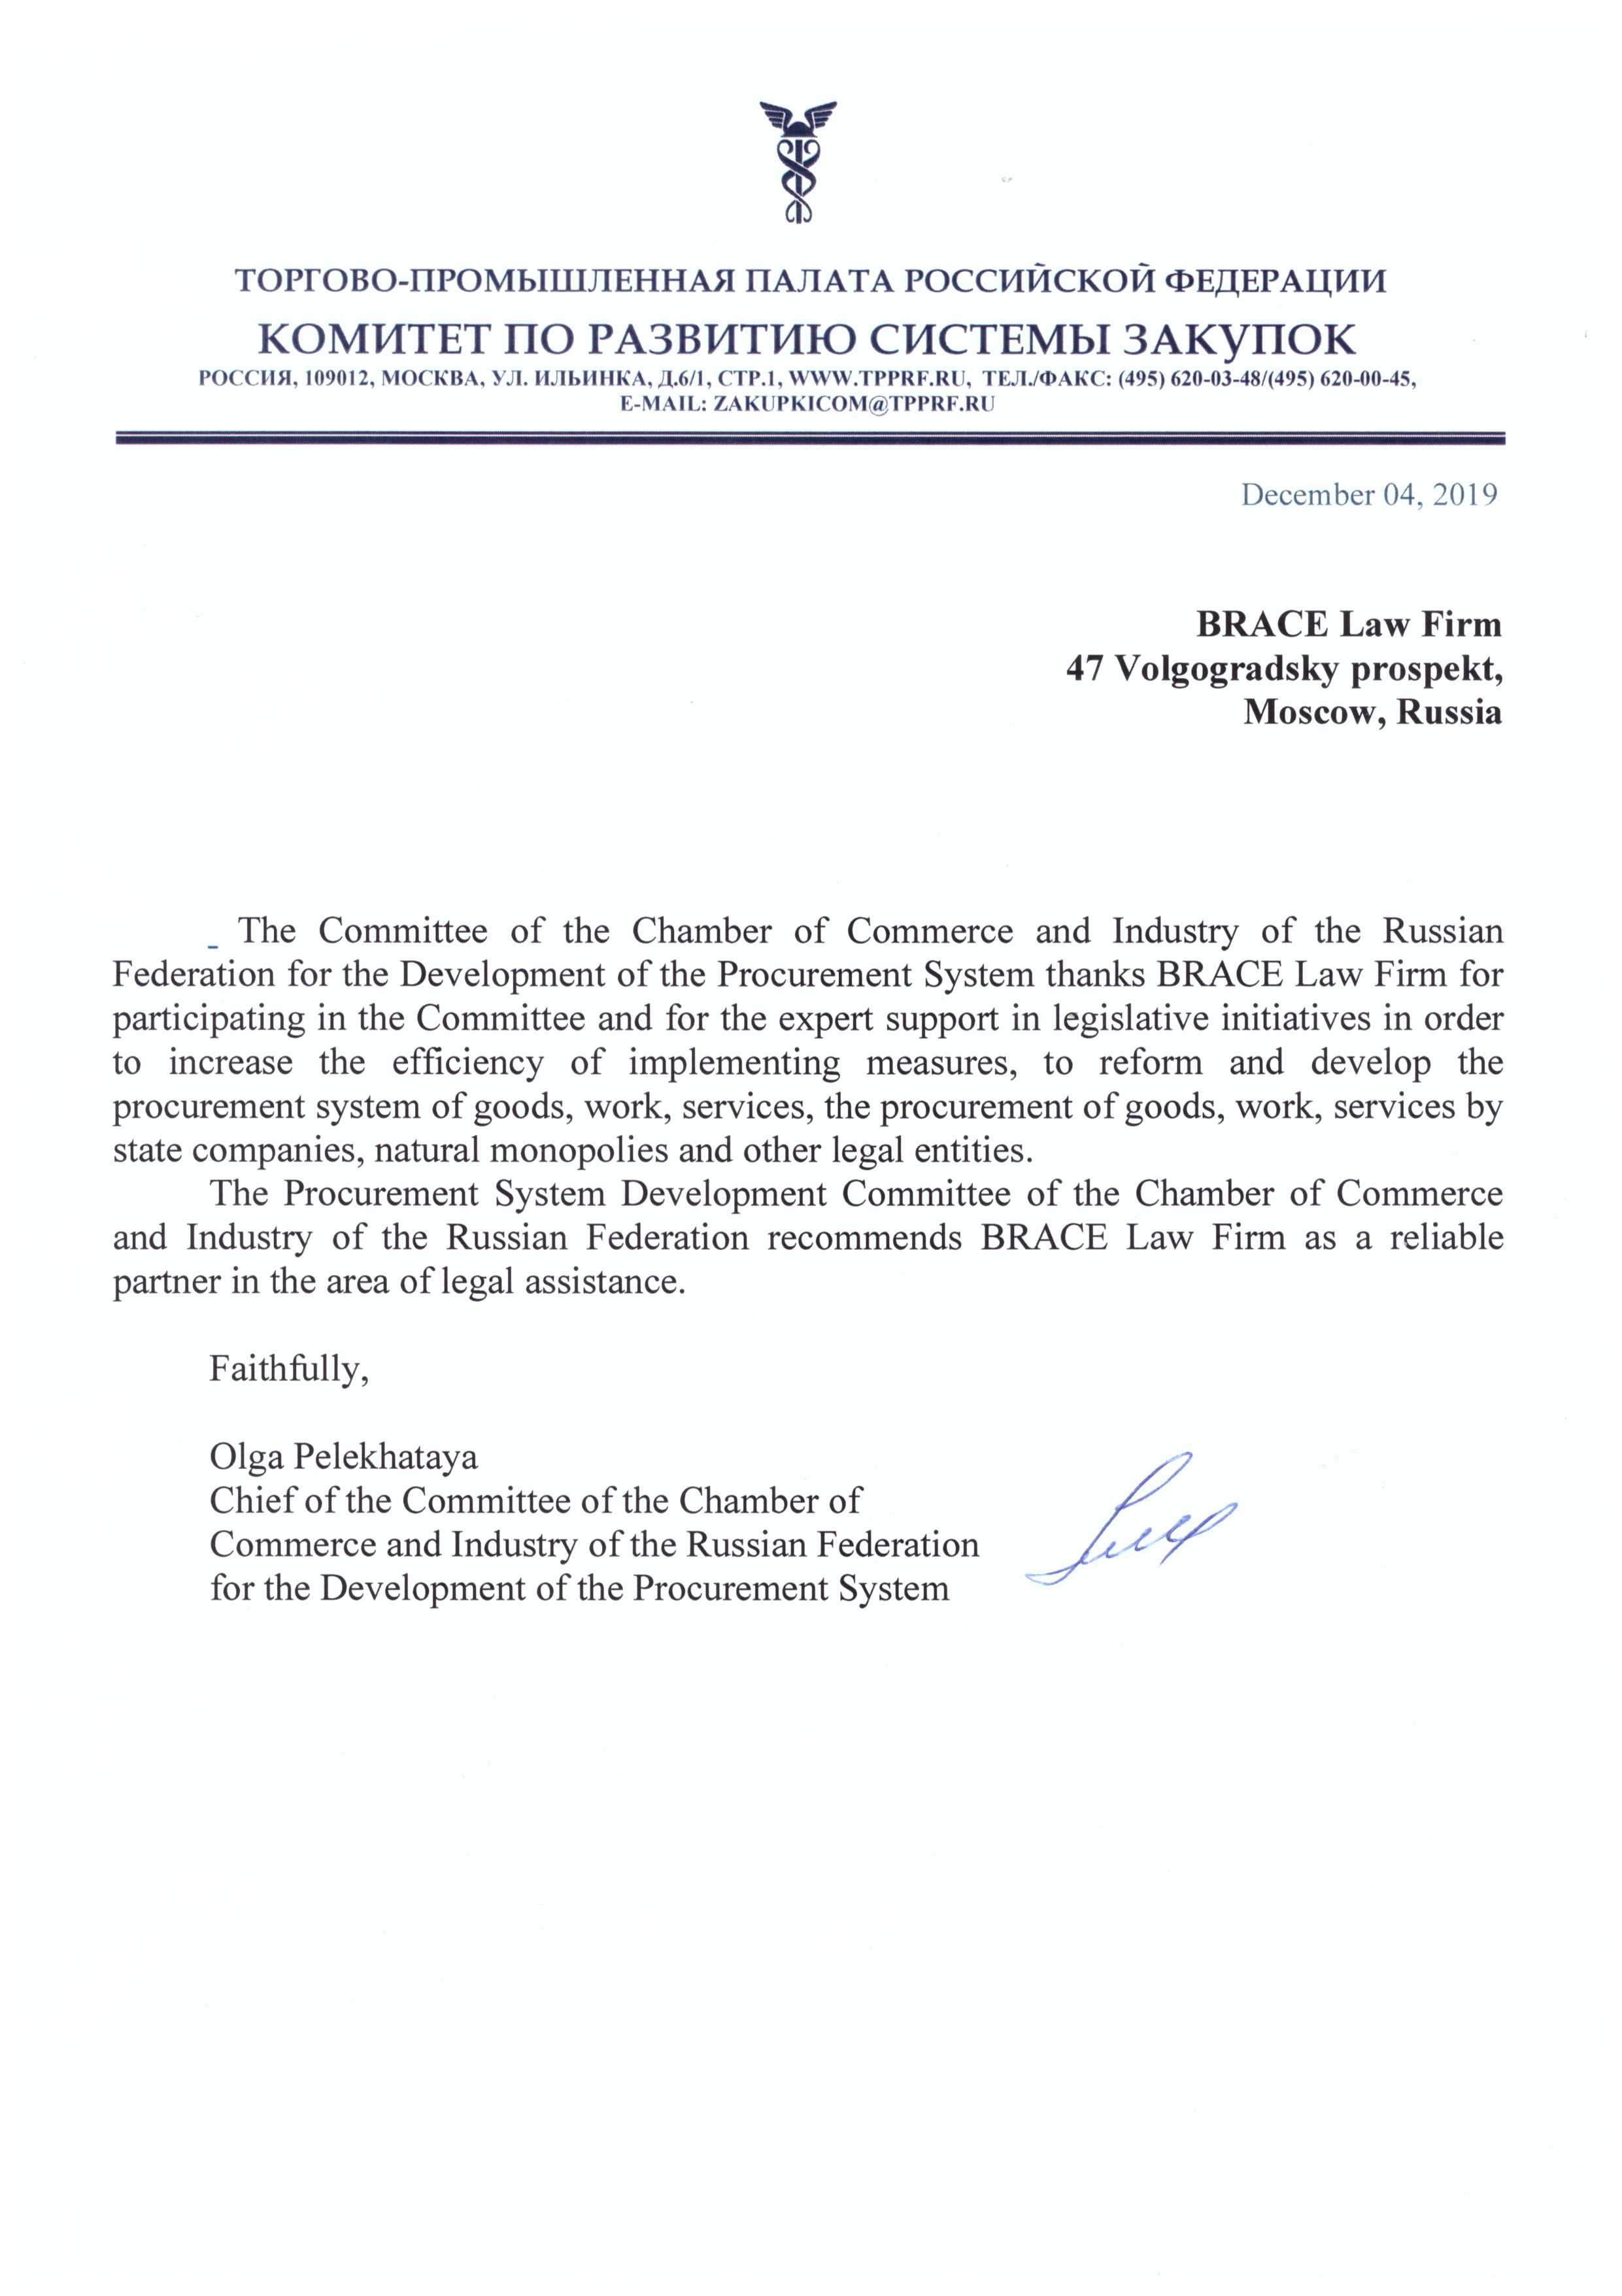 Letter of recommendation committee on the development of the procurement system of the rf cci law firm brace